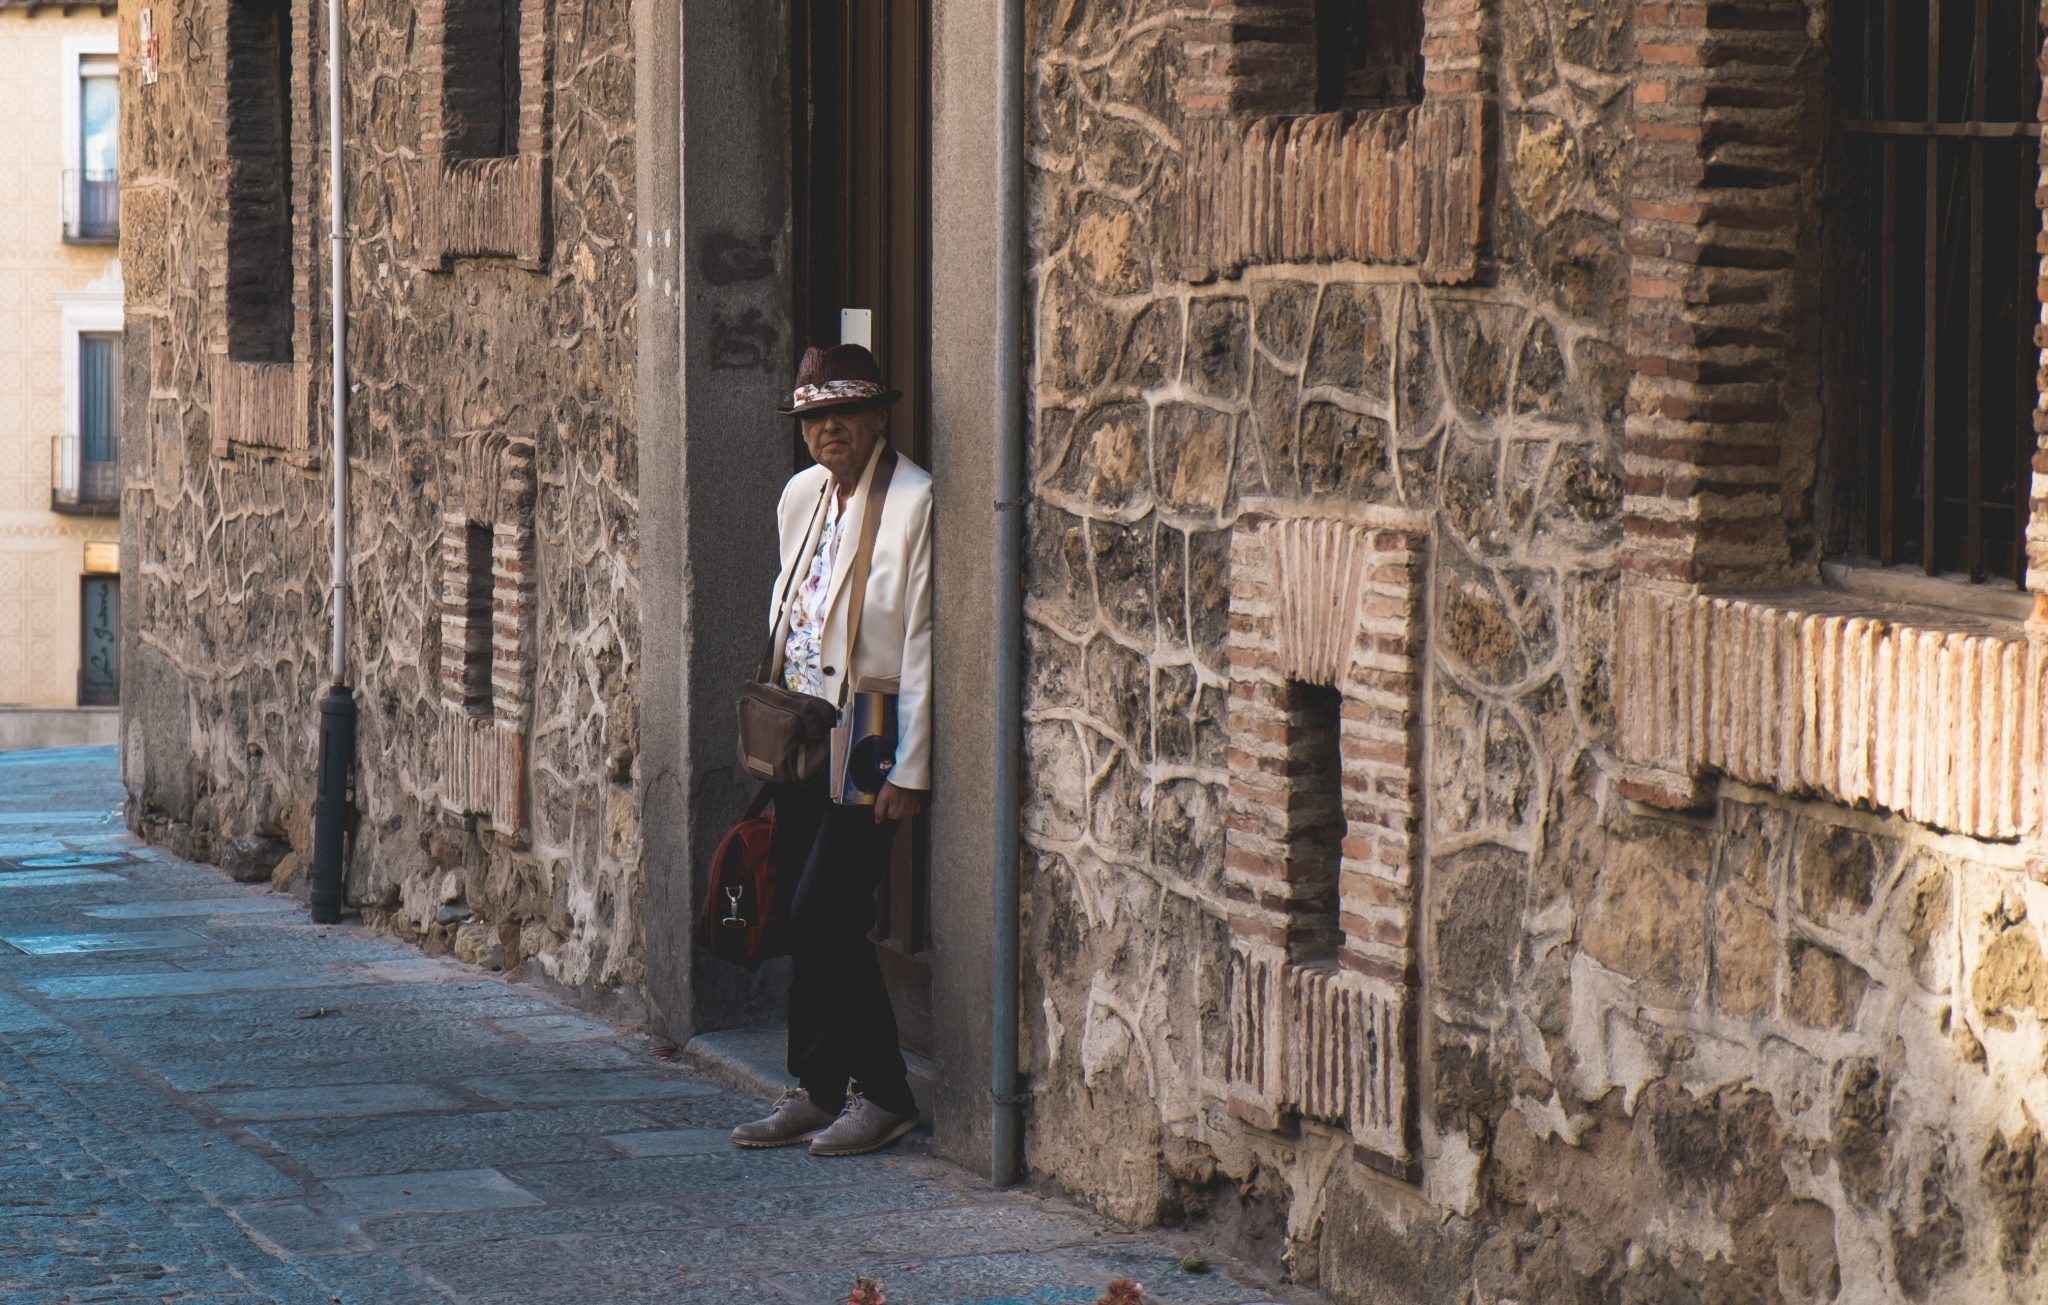 Old man standing in front of a door photo by Jo Kassis